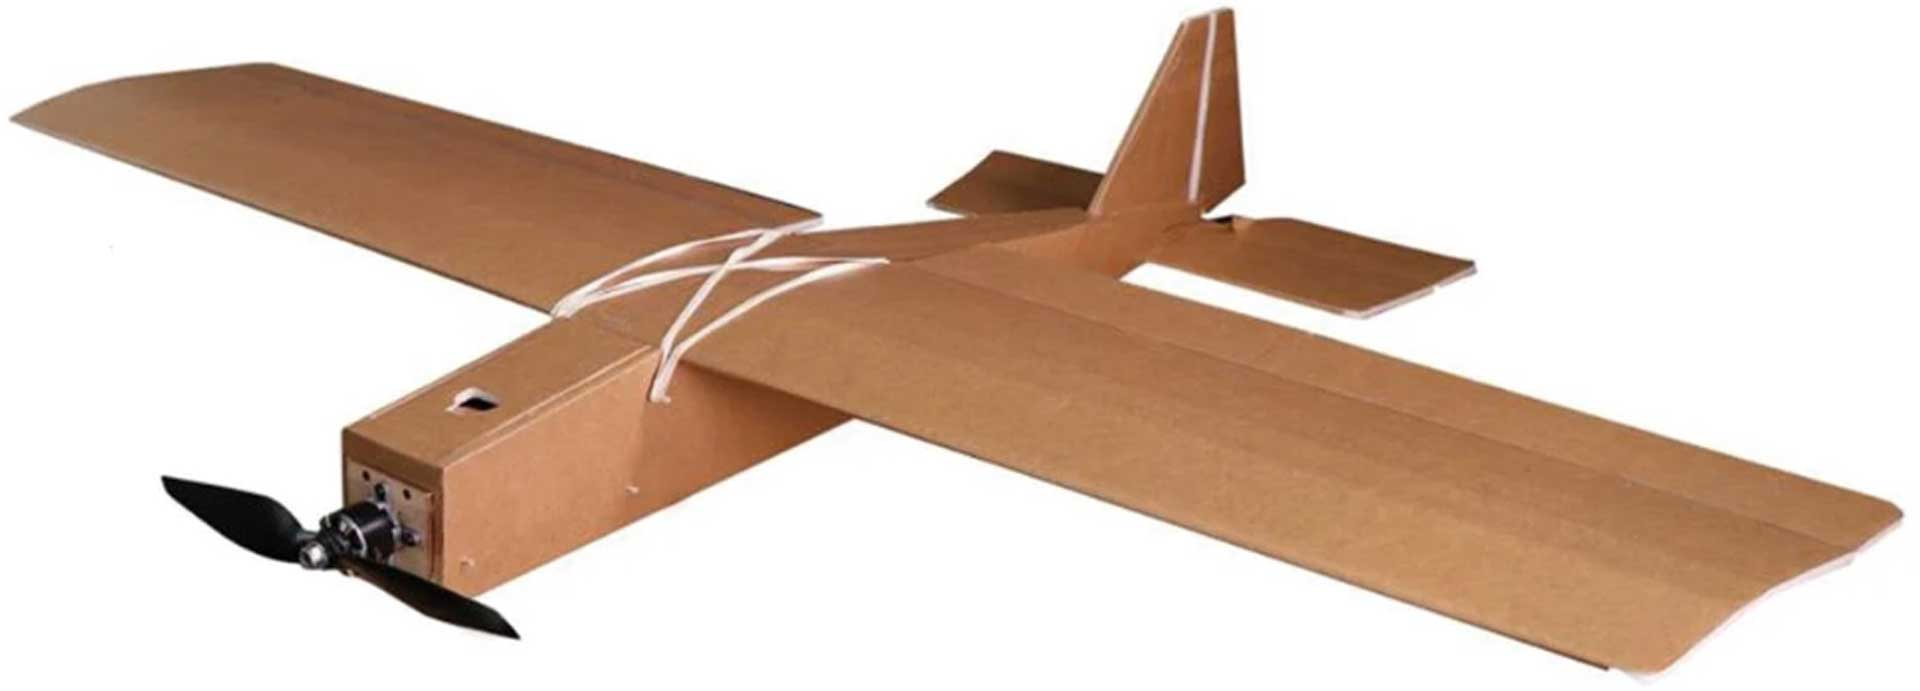 FLITE TEST Simple Stick Electric Airplane Kit (1067 mm)